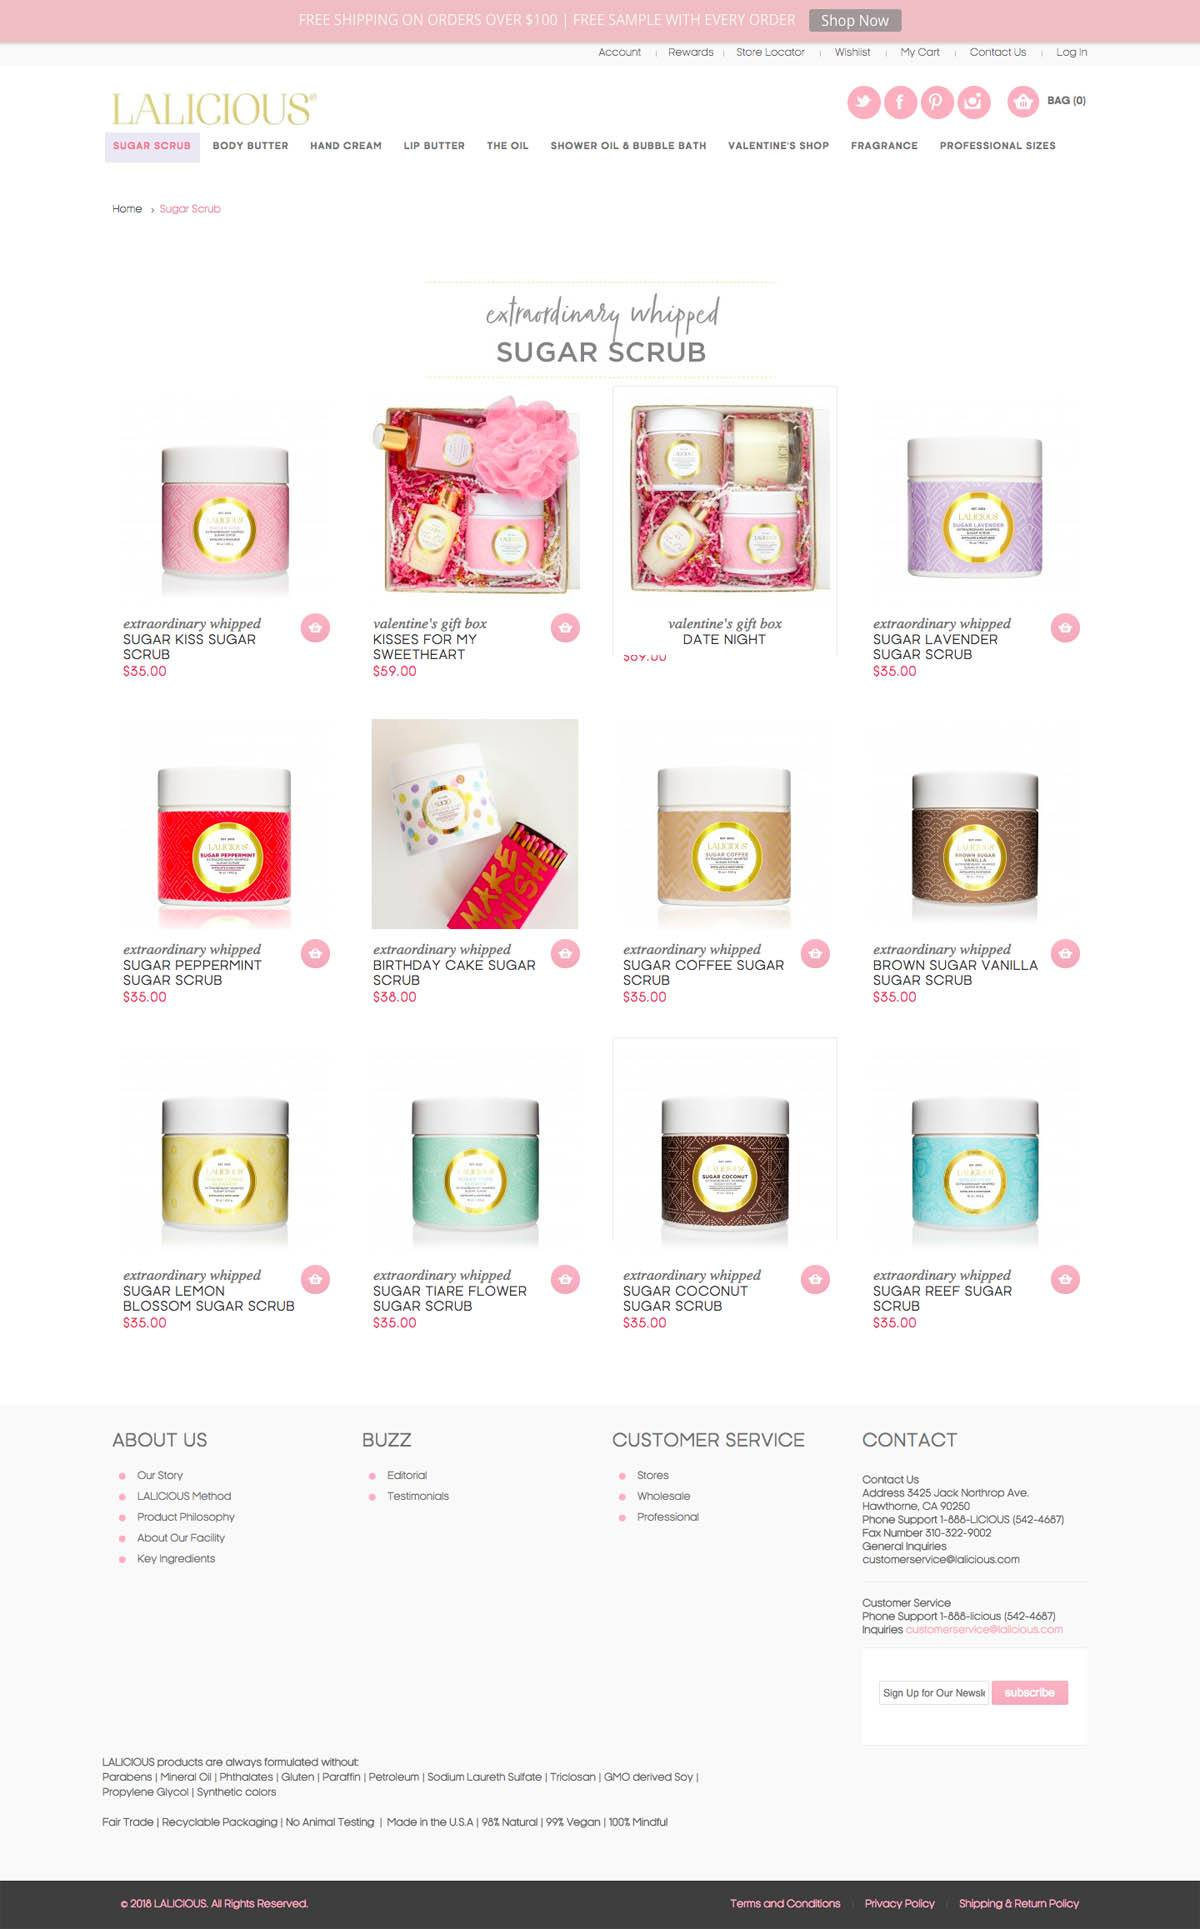 eCommerce website: LaLicious